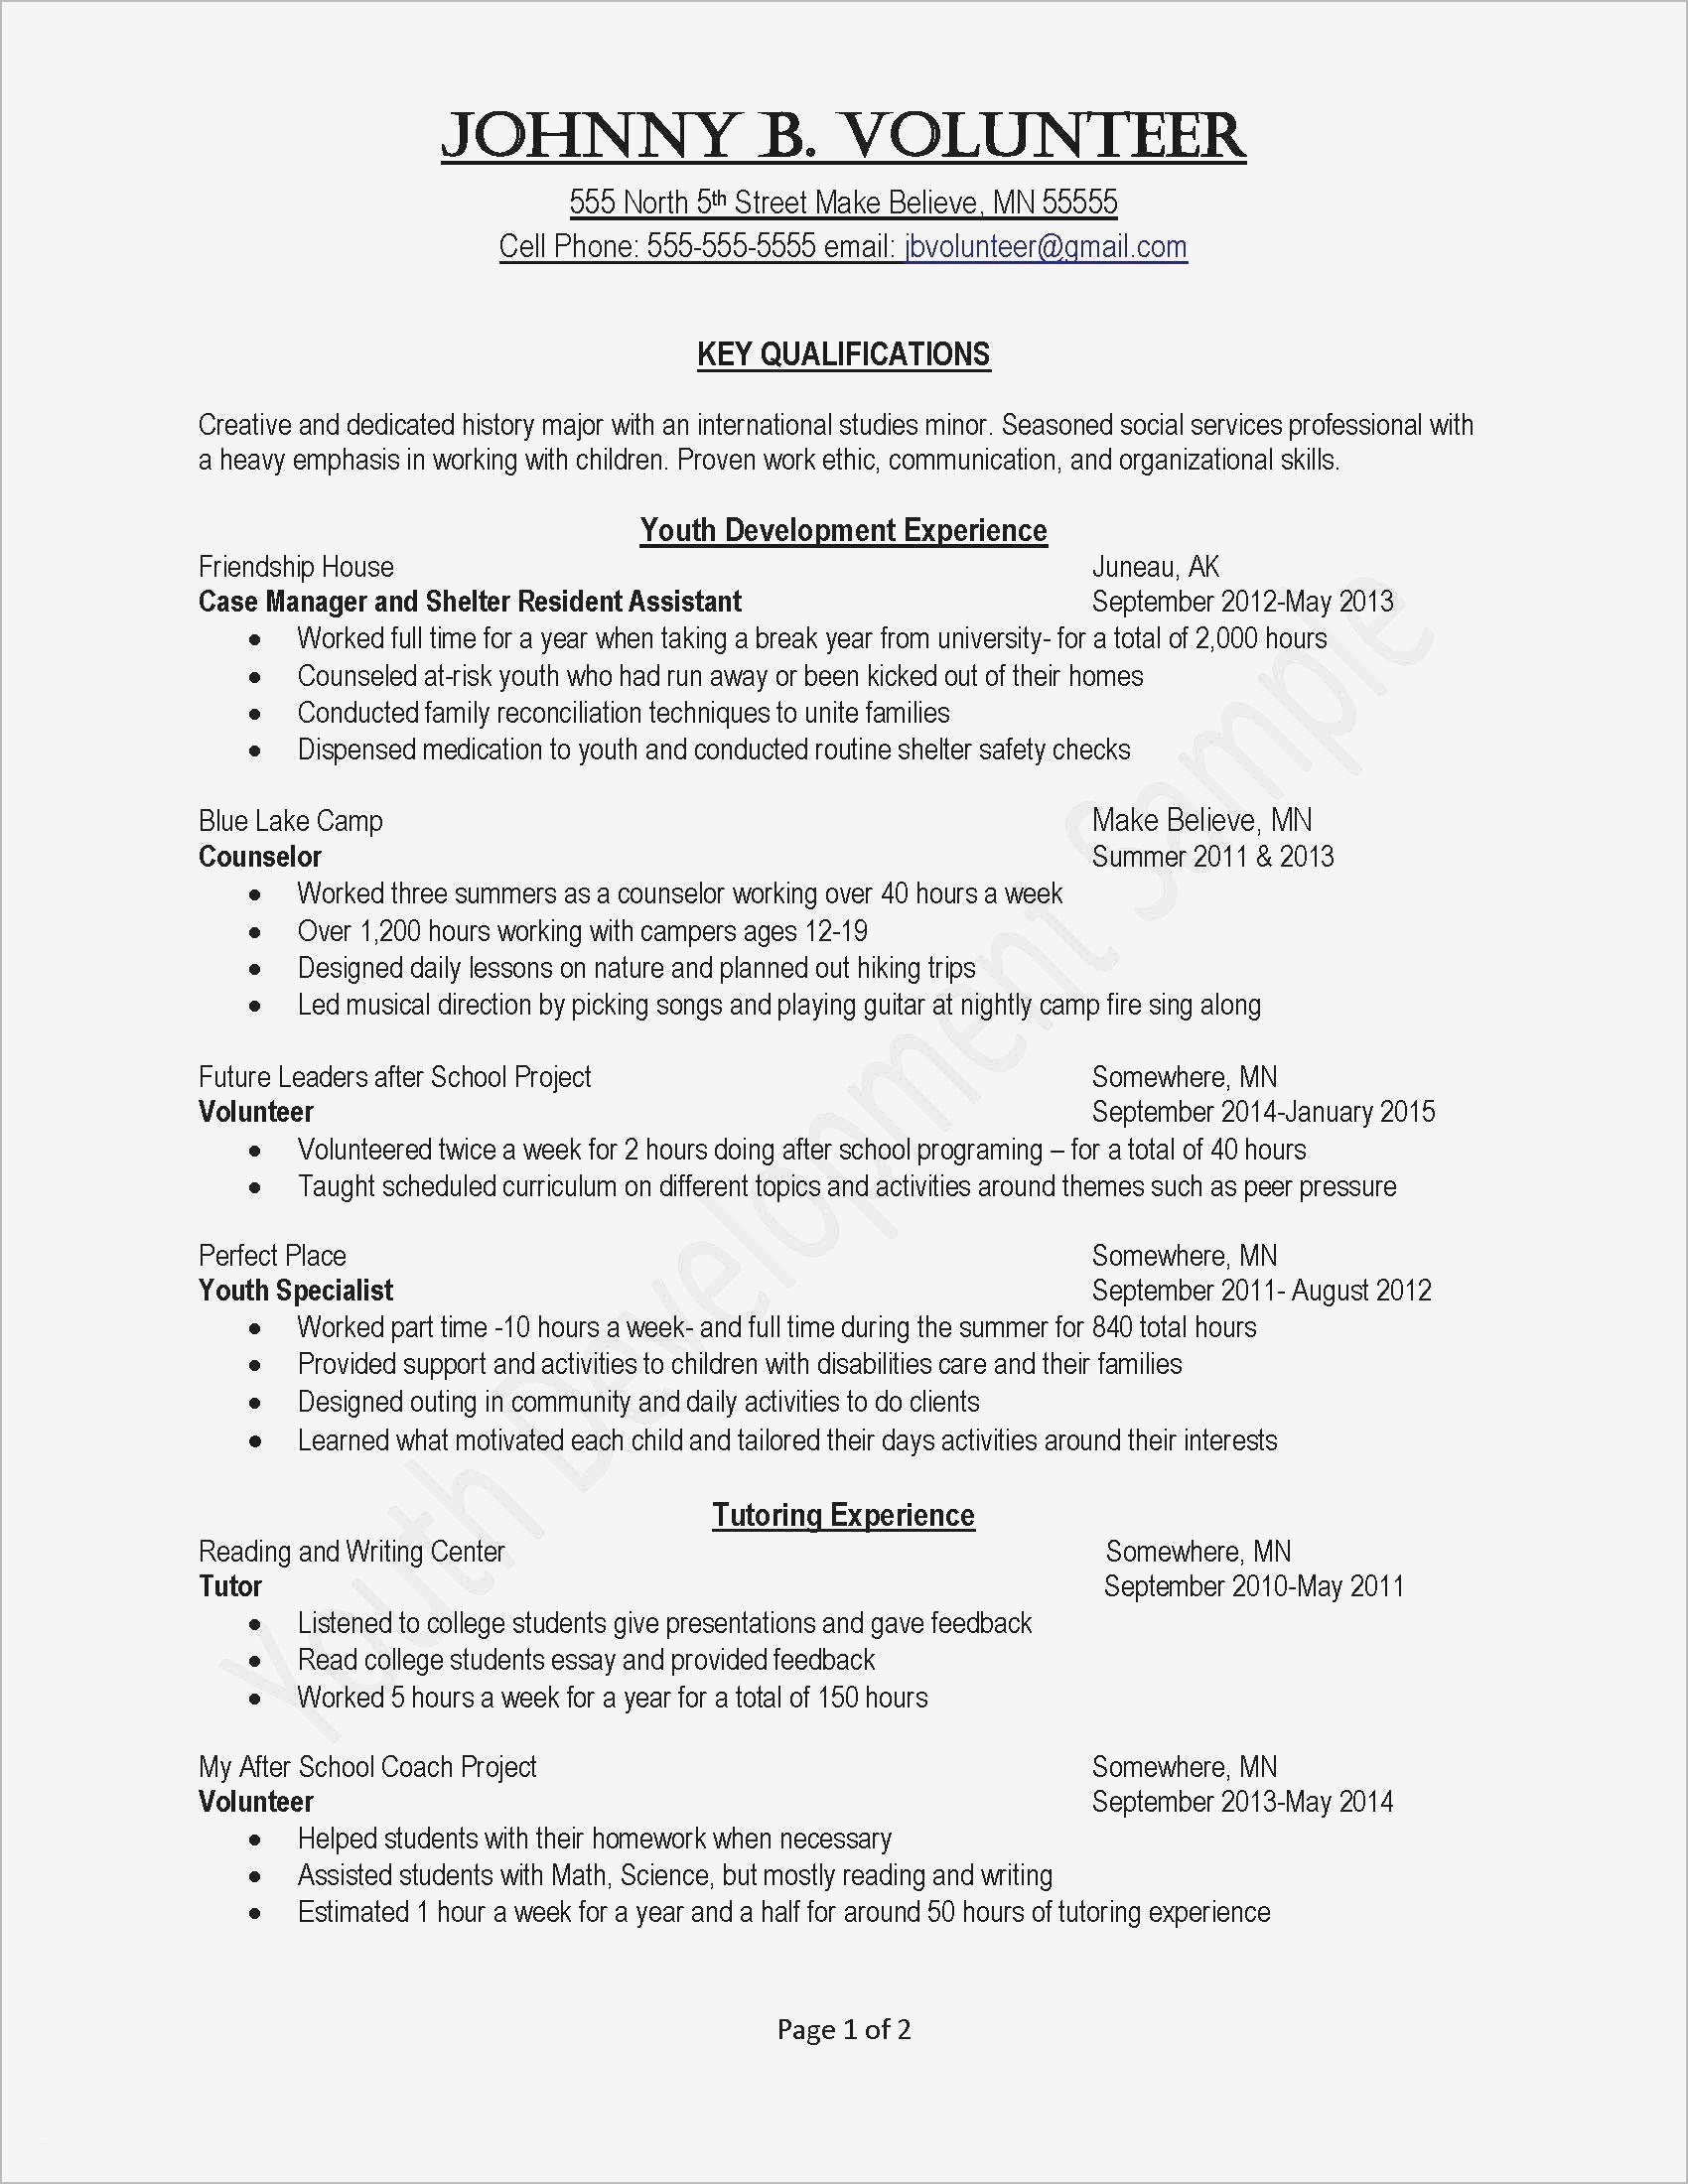 Cover Letter Template Restaurant - Cover Letter Template Resume Inspirationa Activities Resume Template